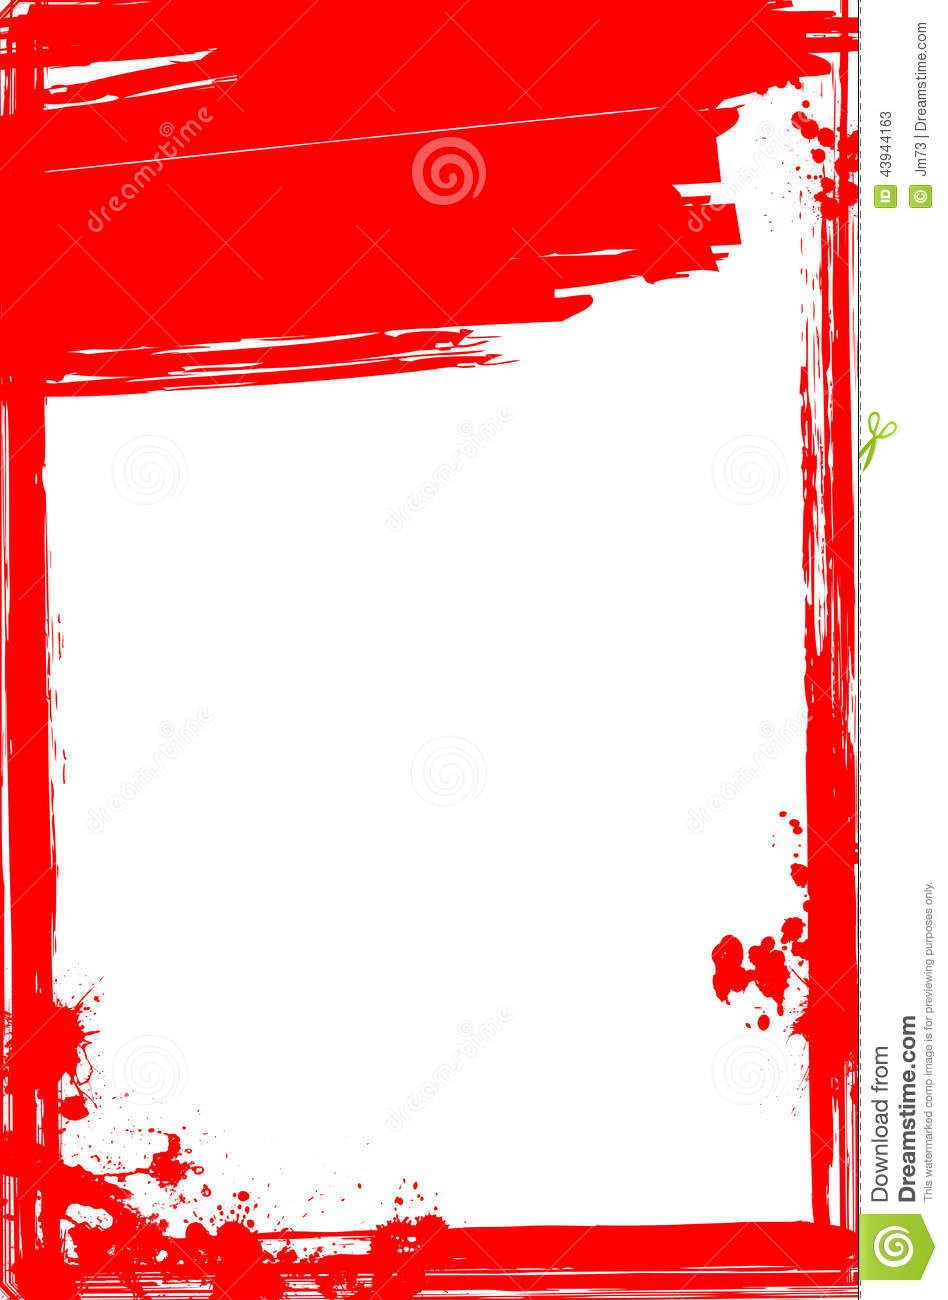 bloody frame royaltyfree stock image cartoondealercom